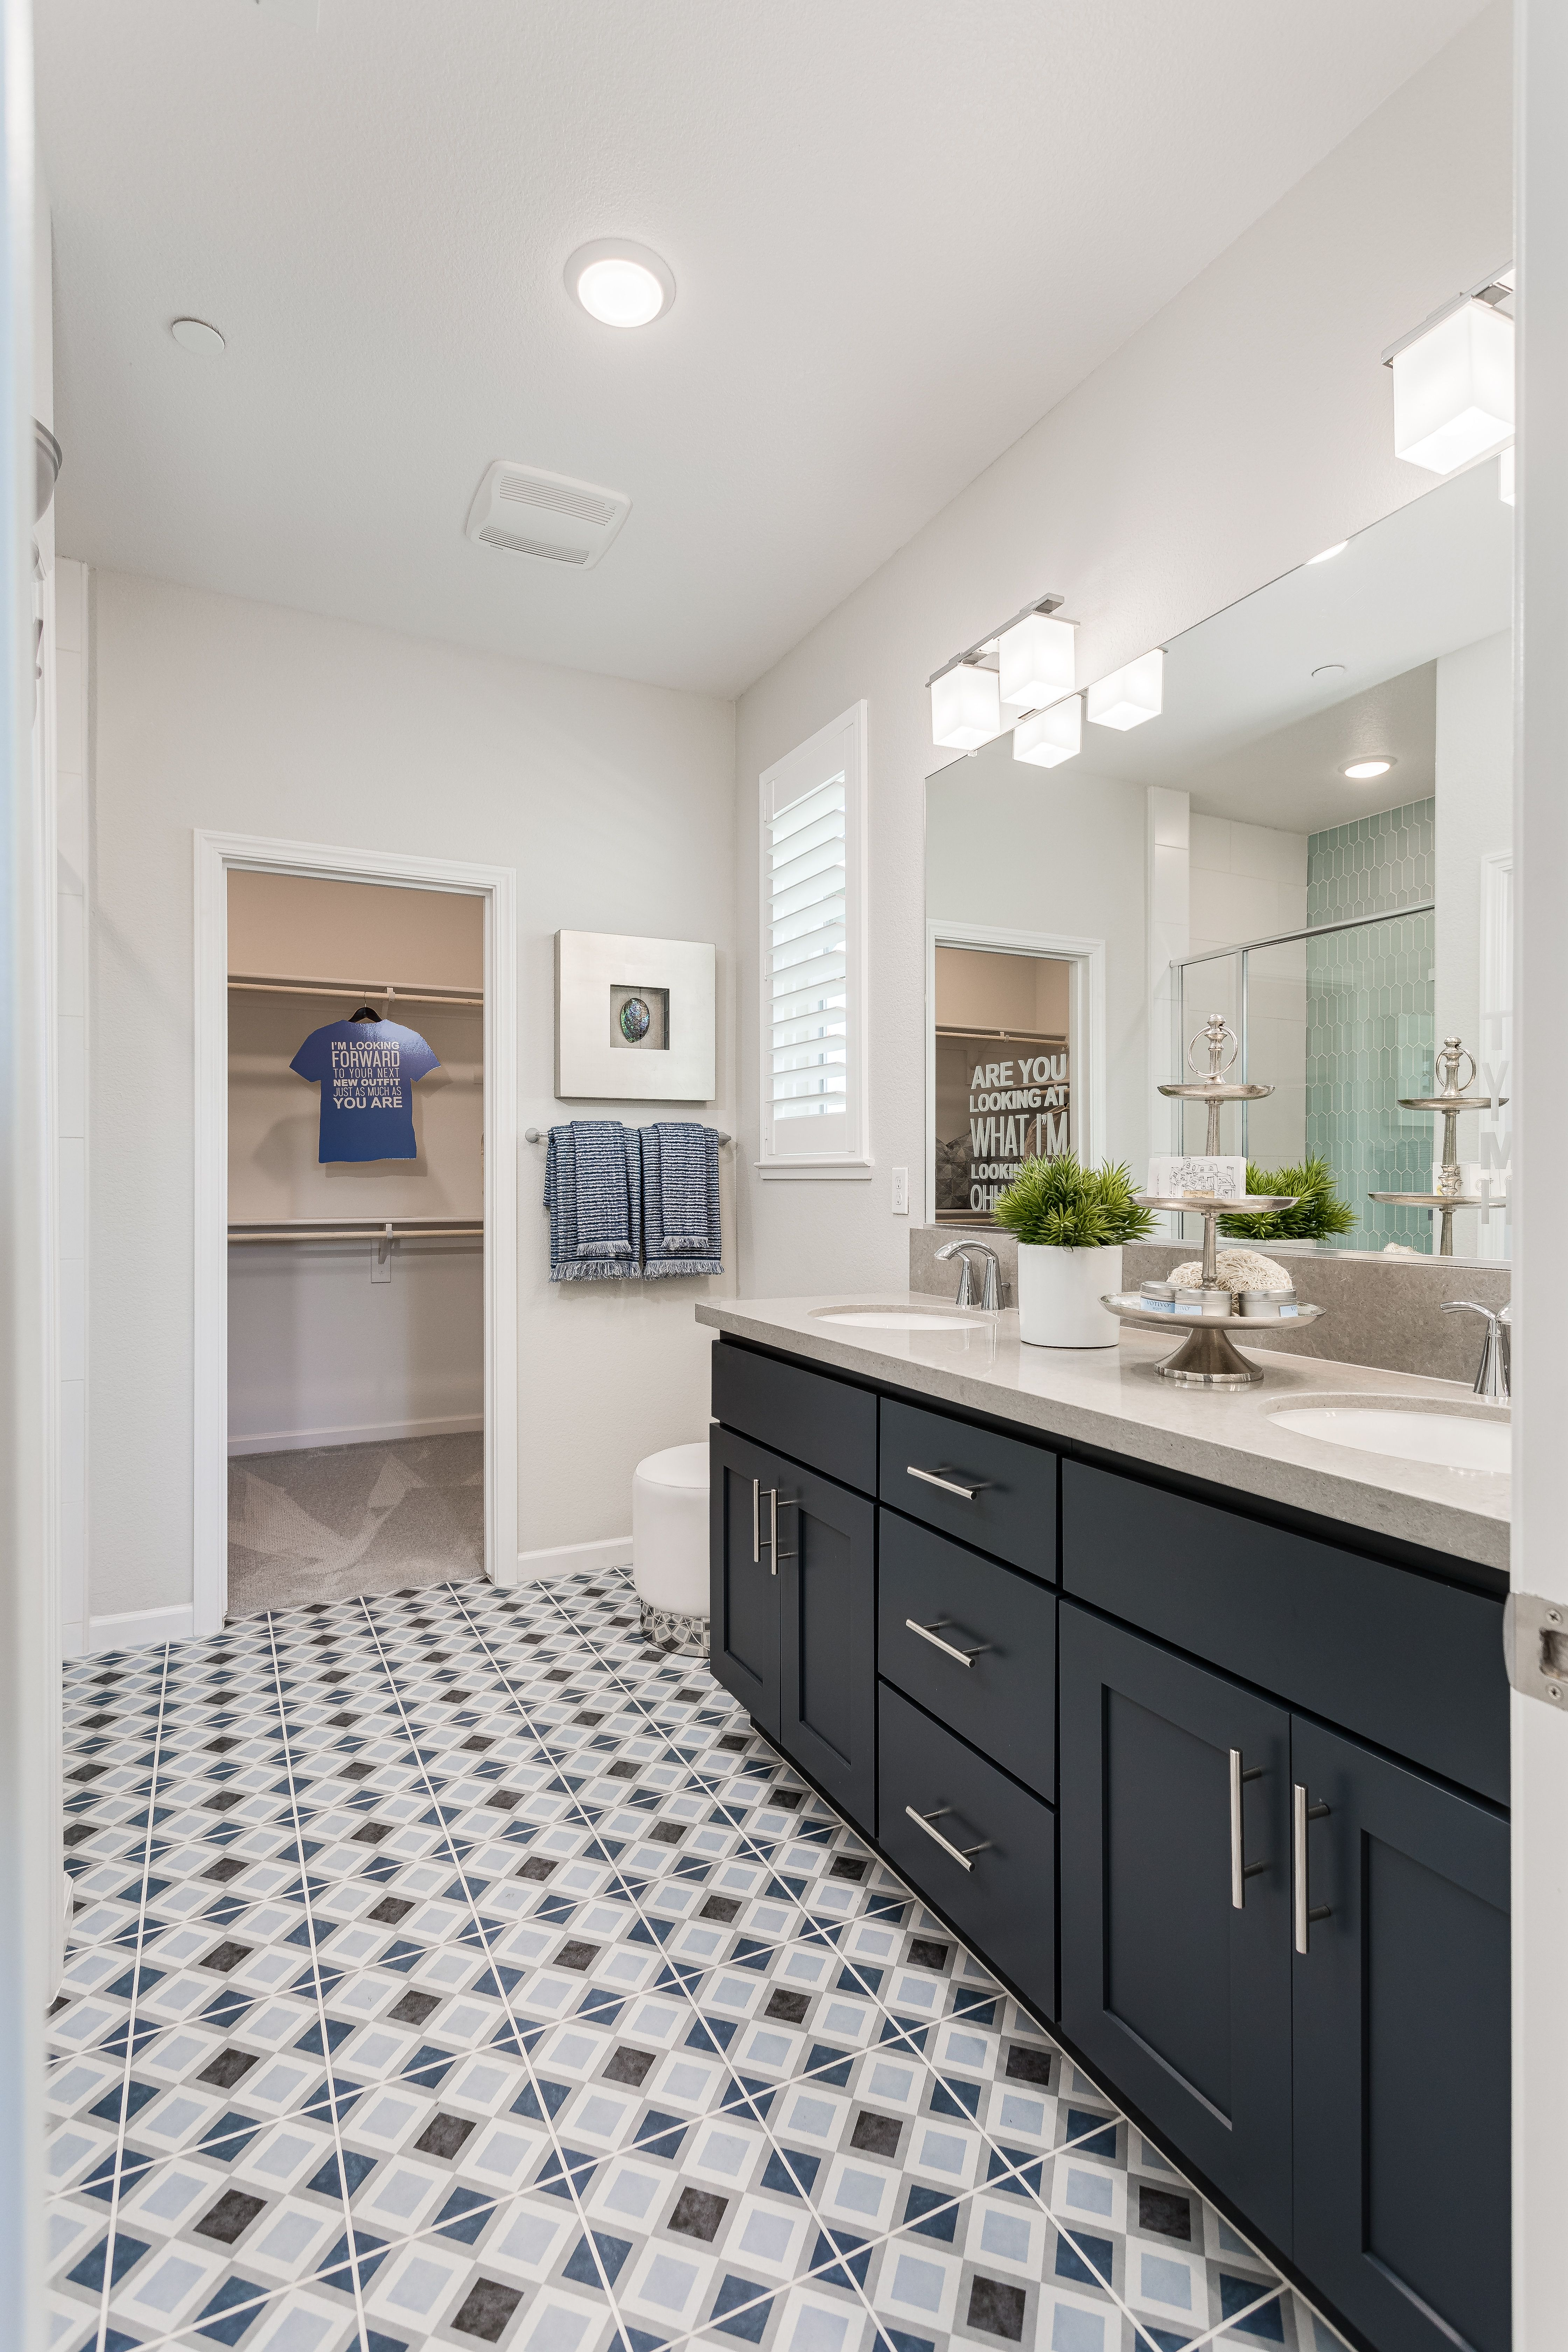 Bathroom featured in the Residence 1 By Taylor Morrison in Stockton-Lodi, CA